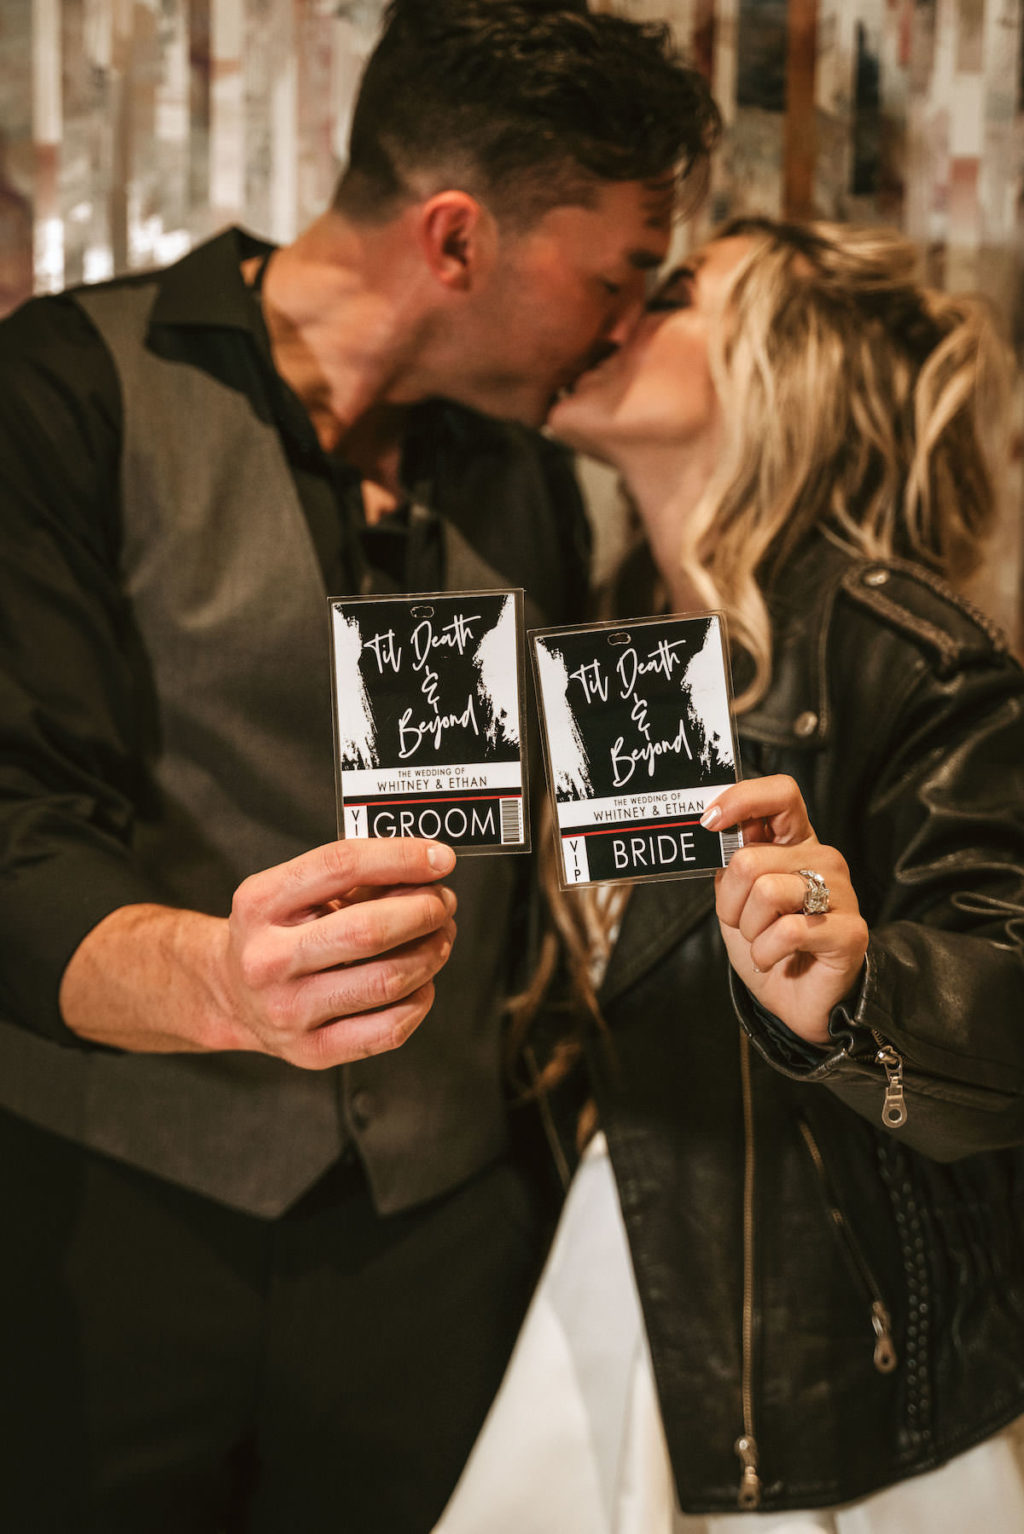 Urban and Edgy Bride in Black Leather Jacket and Short Wedding Dress with Groom in Black Dress Shirt and Pants and Gray Vest Holding VIP Black Backstage Concert Pass Style Wedding Invitations | Tampa Wedding Planner and Designer UNIQUE Weddings and Events | Wedding Photographer Bonnie Newman Creative